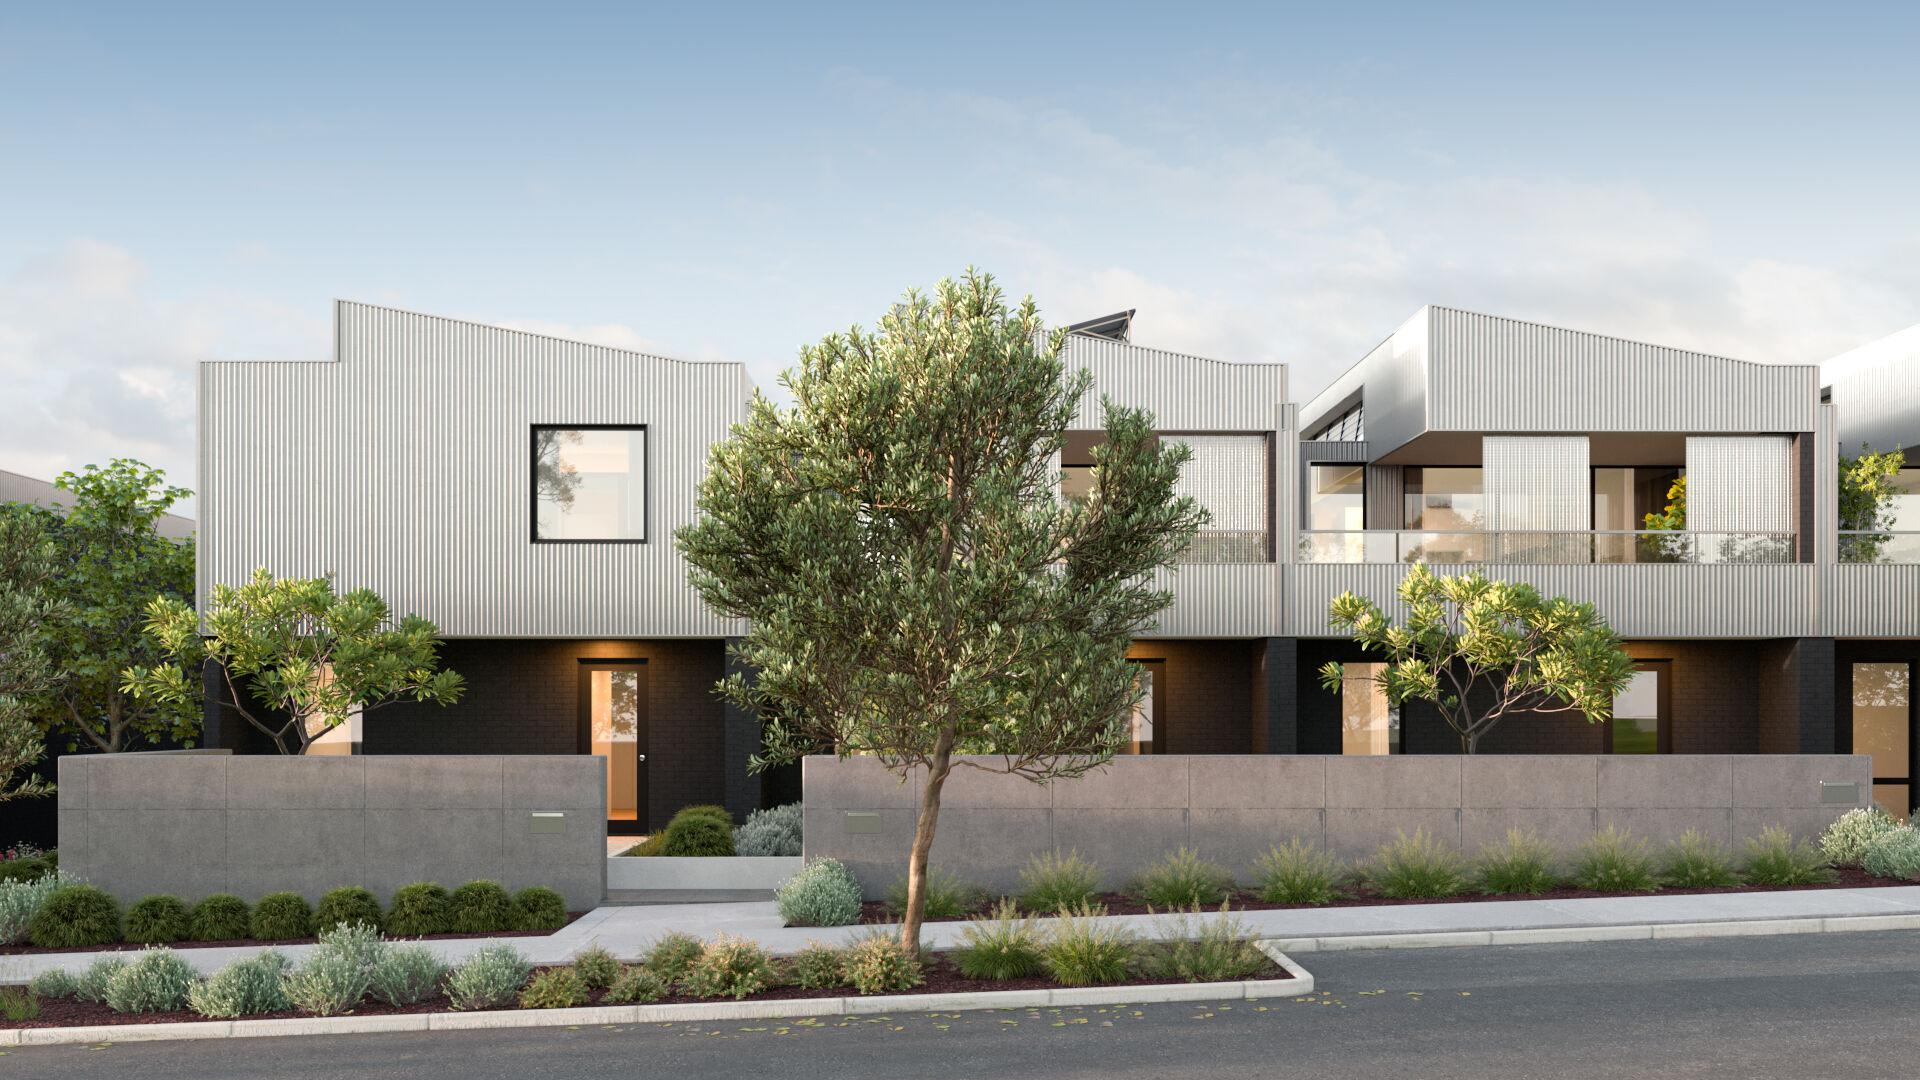 east village at knutsford housing image developmentwa march 2020